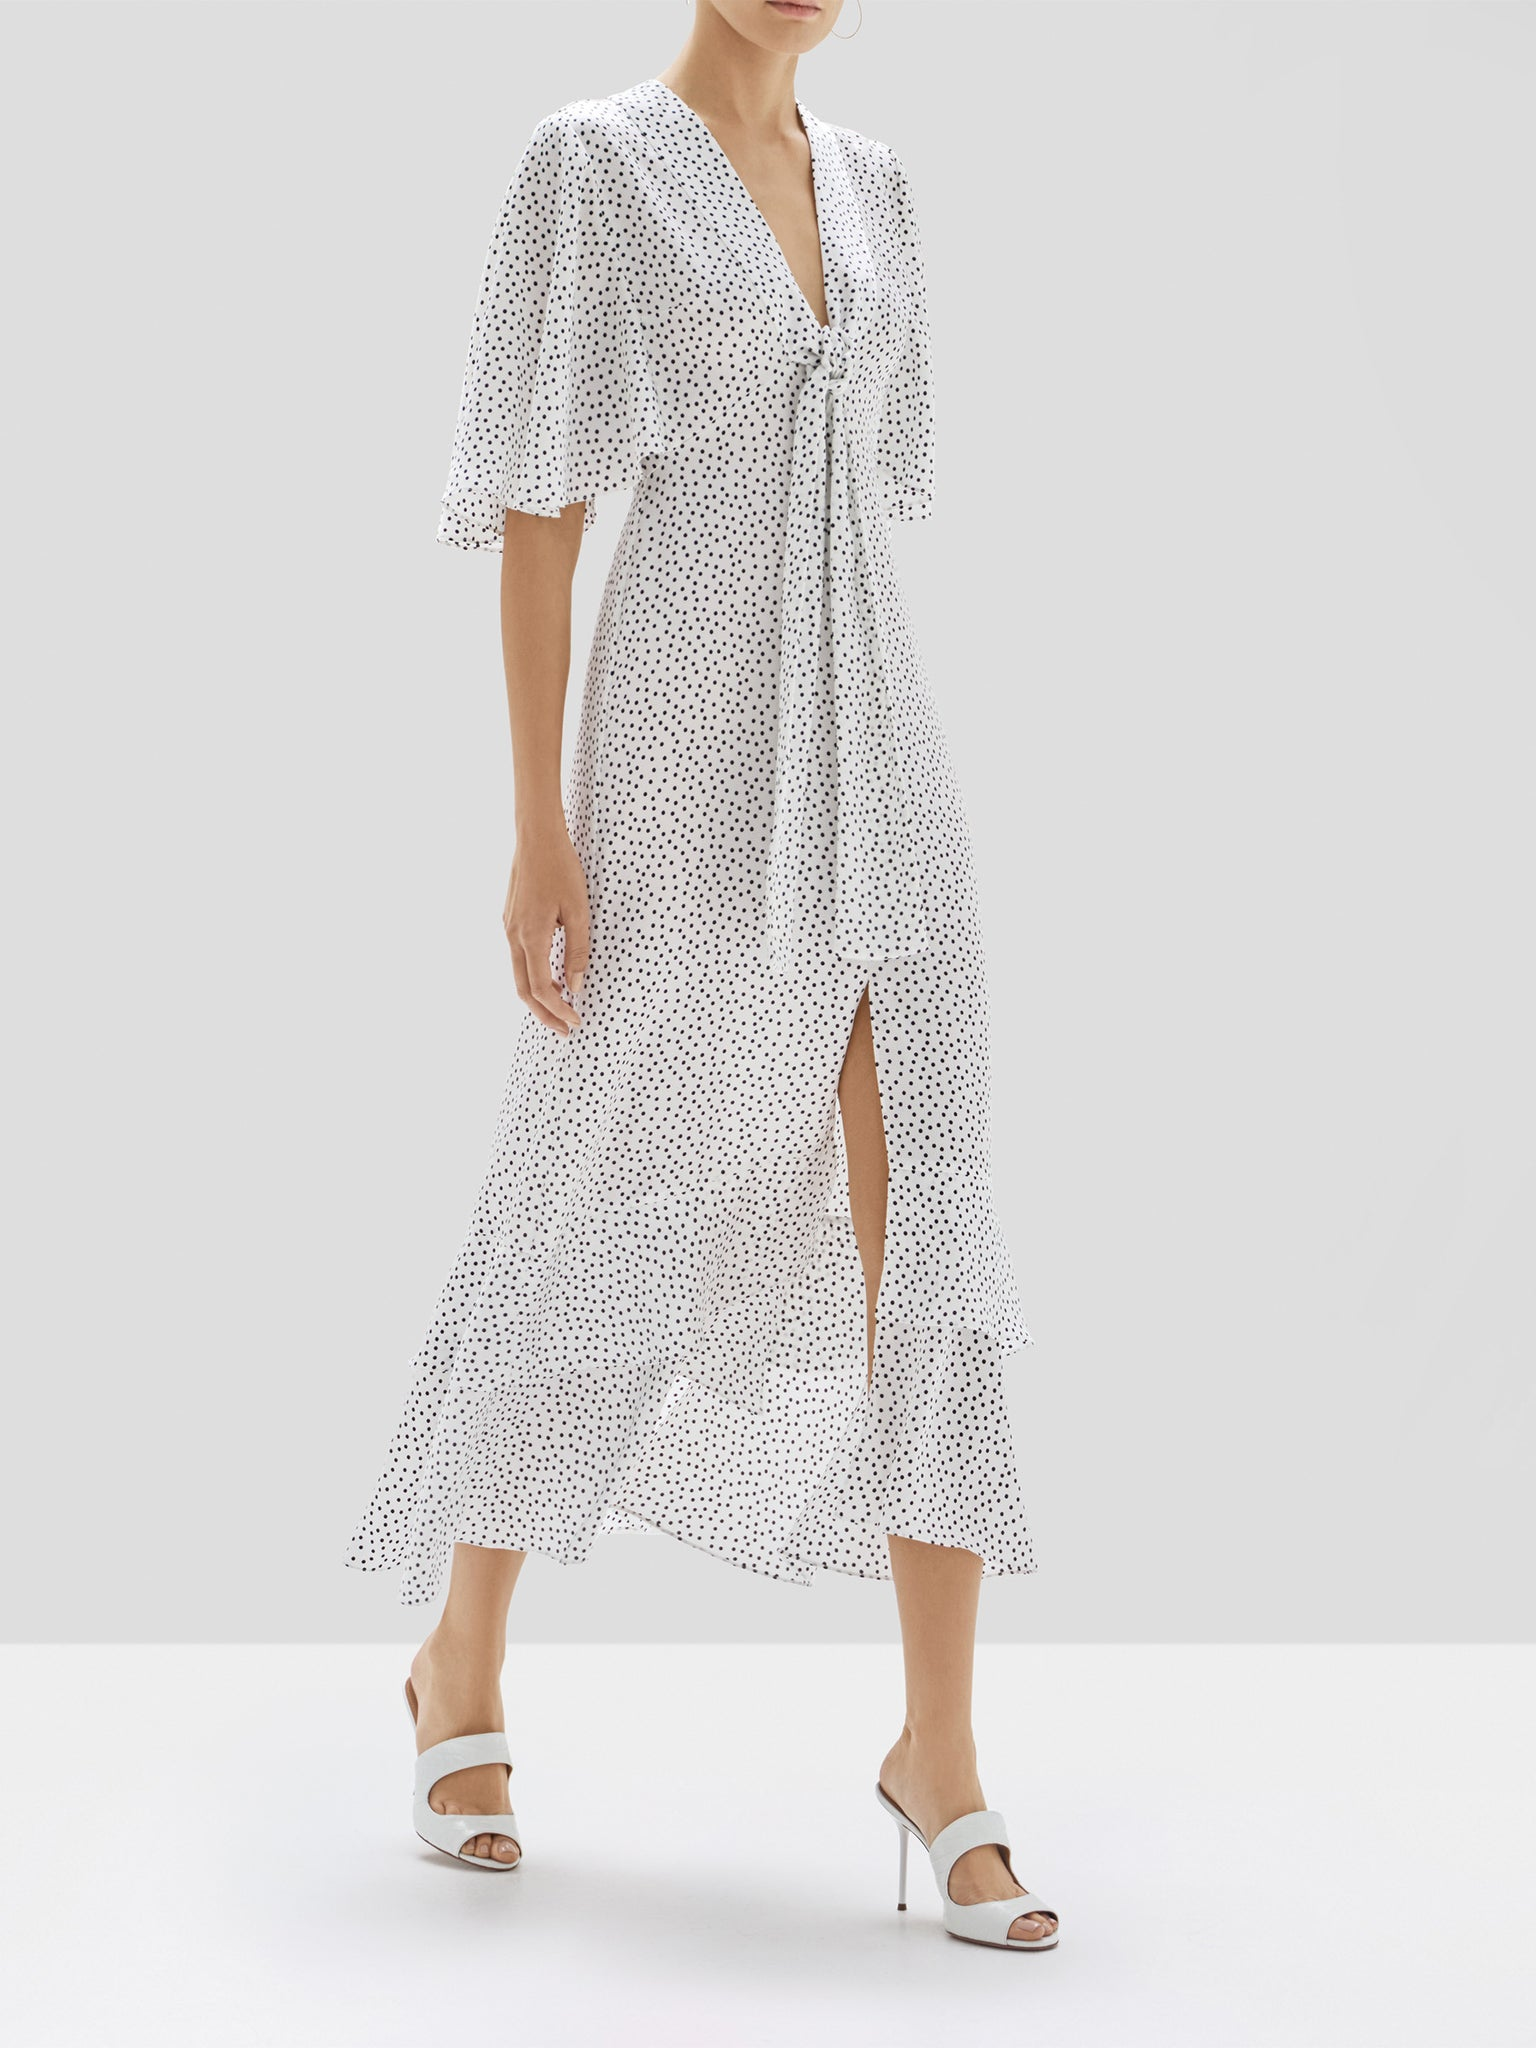 Alexis Kasany Dress in White and Black Dot from the Pre Spring 2020 Collection